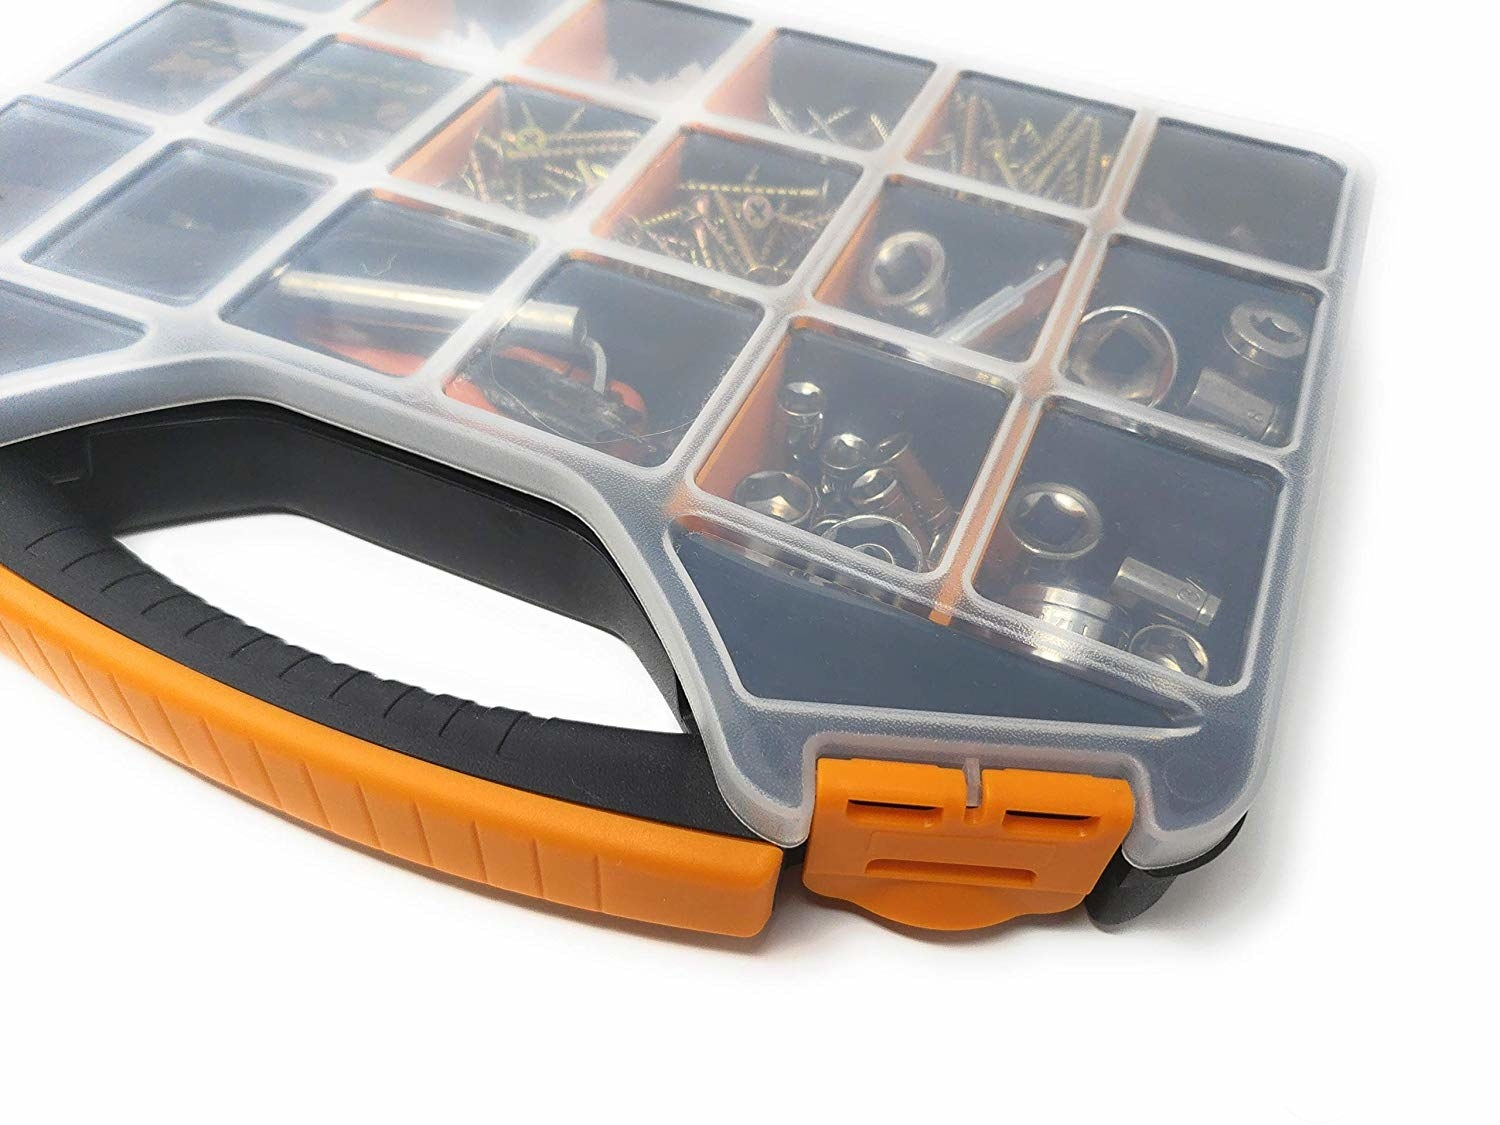 tool and hardware pieces organizer with compartments and a clear top